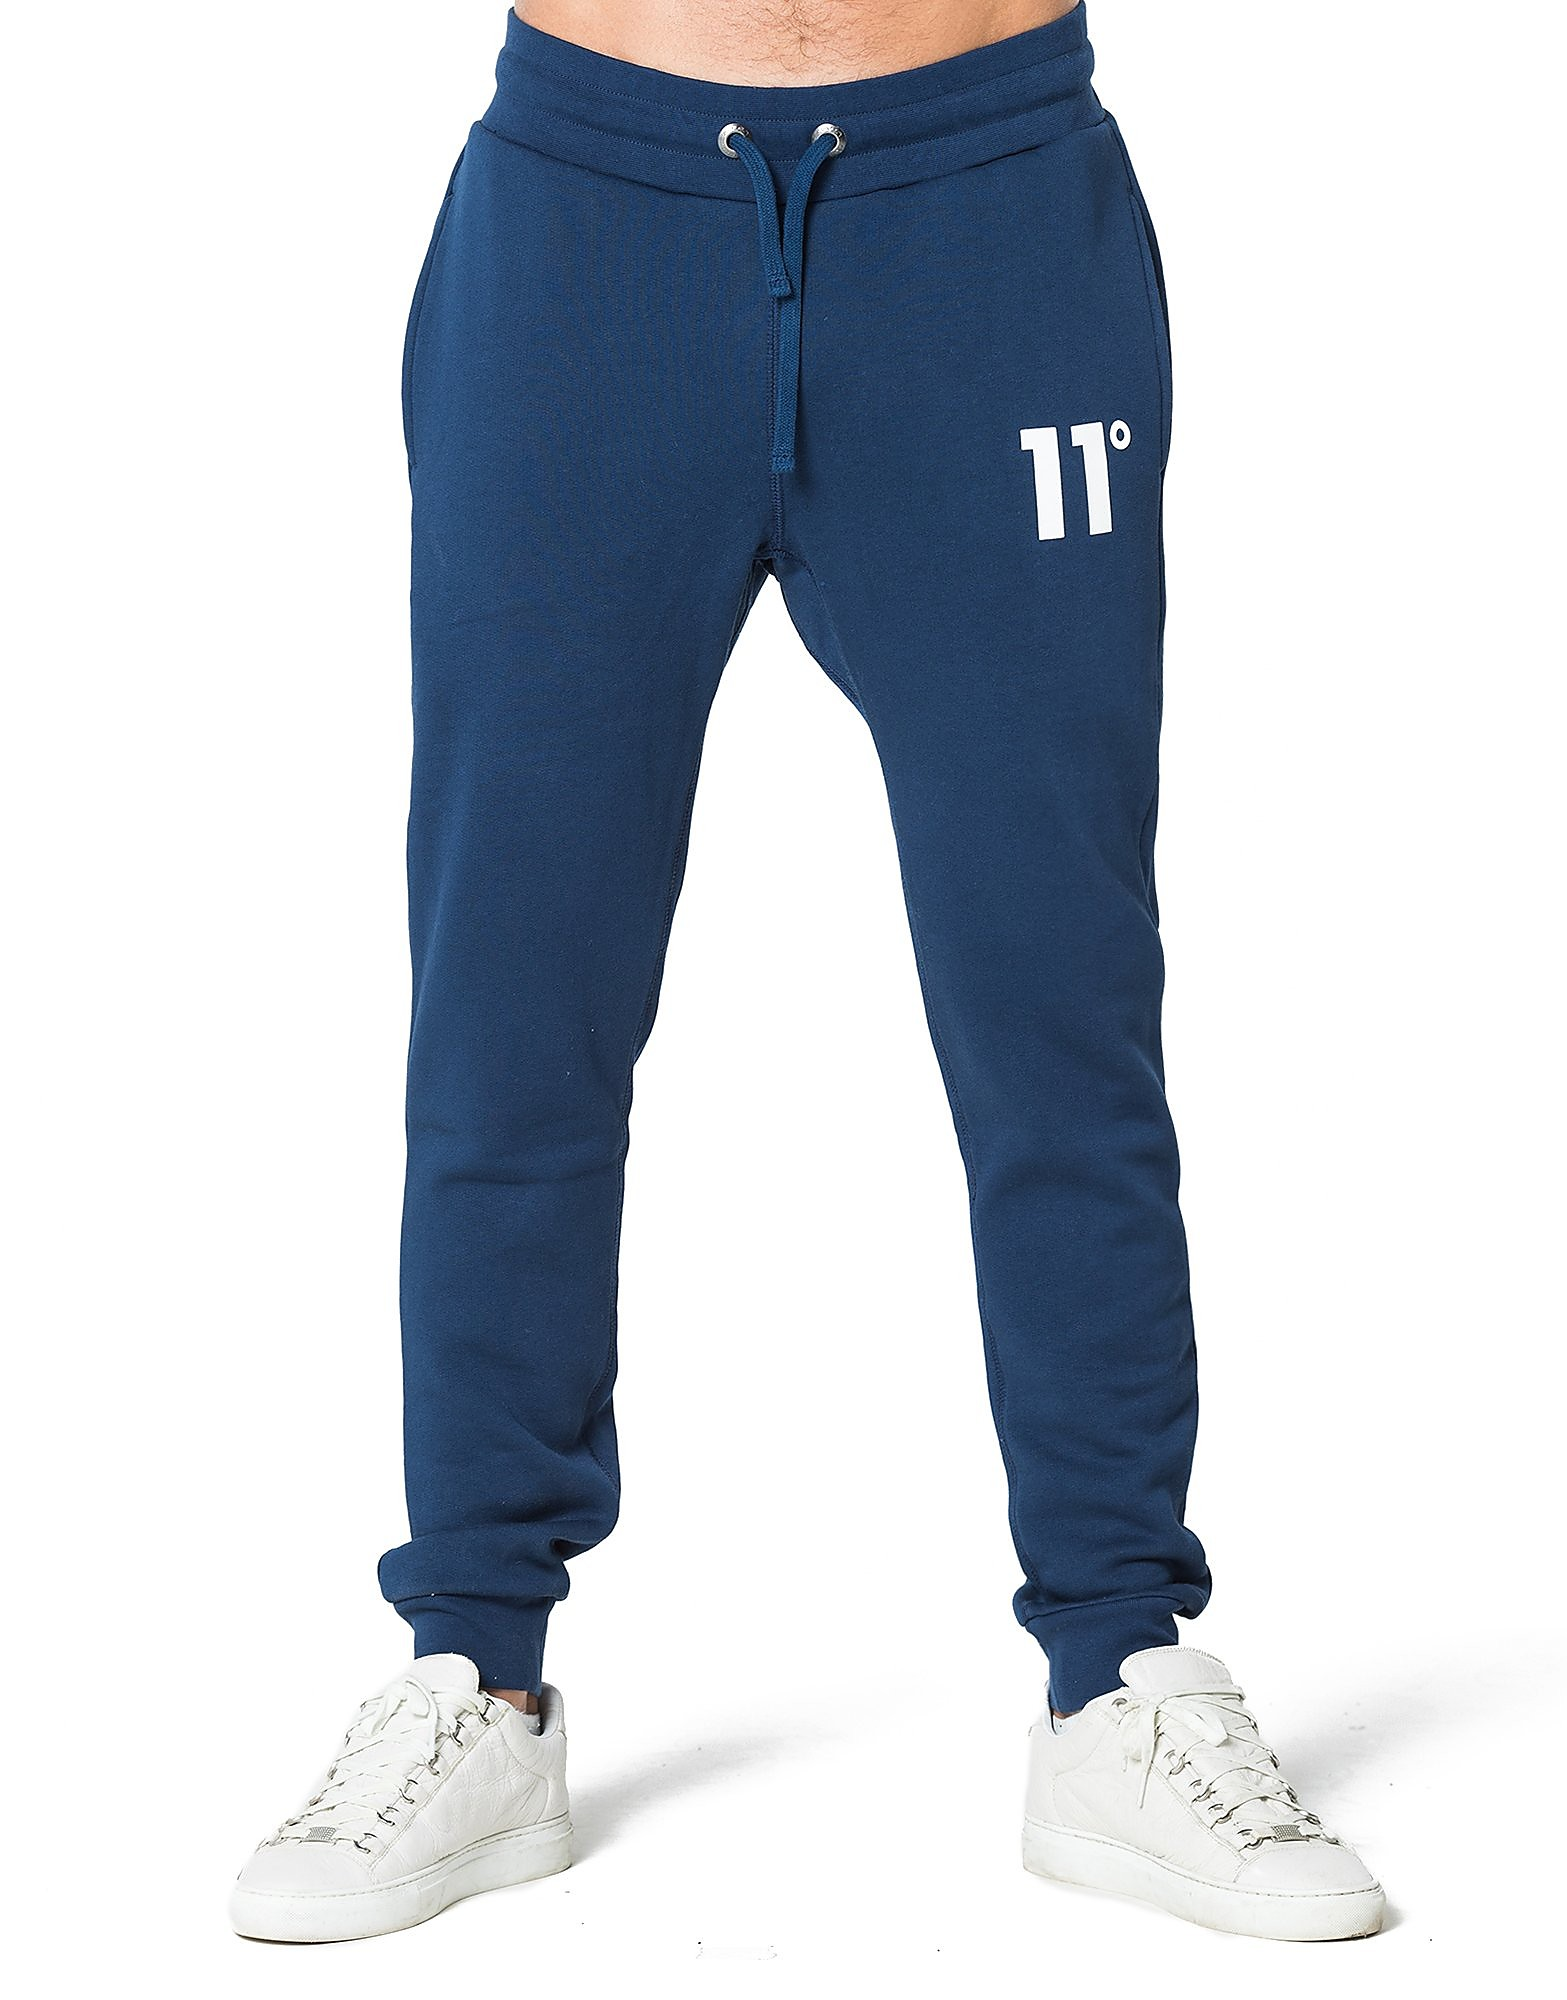 11 Degrees Core Fleece Pants